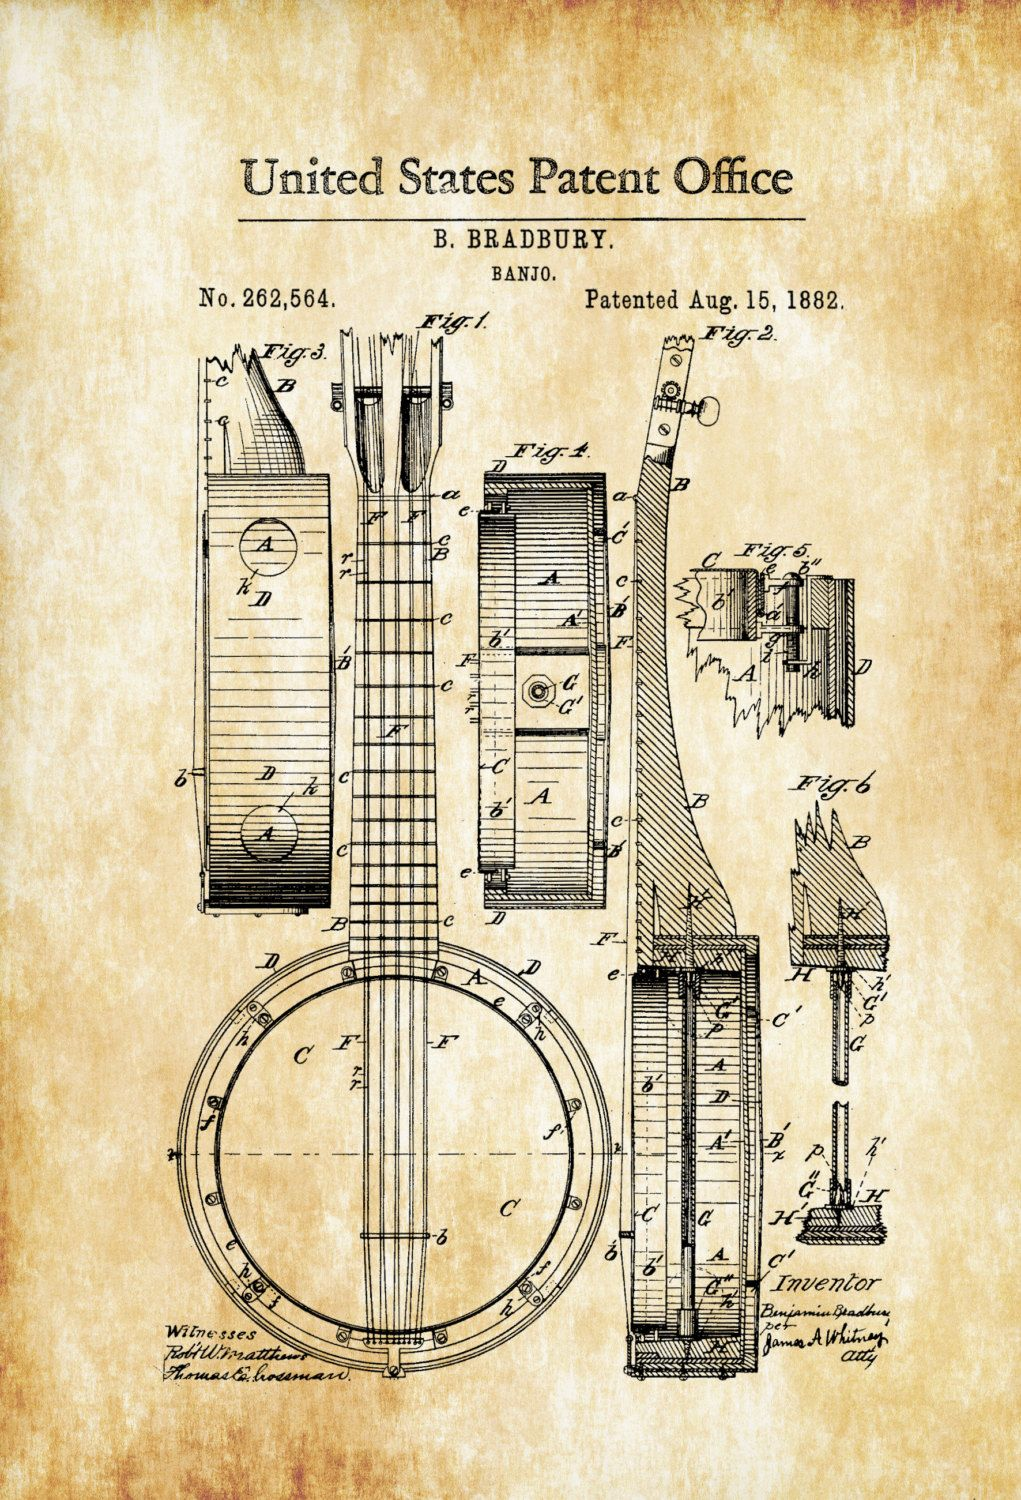 408ec7e451 A patent print poster of a Banjo invented by B. Bradbury. The patent was  issued by the United States Patent Office on August 15, 1882. The banjo is  a four-, ...